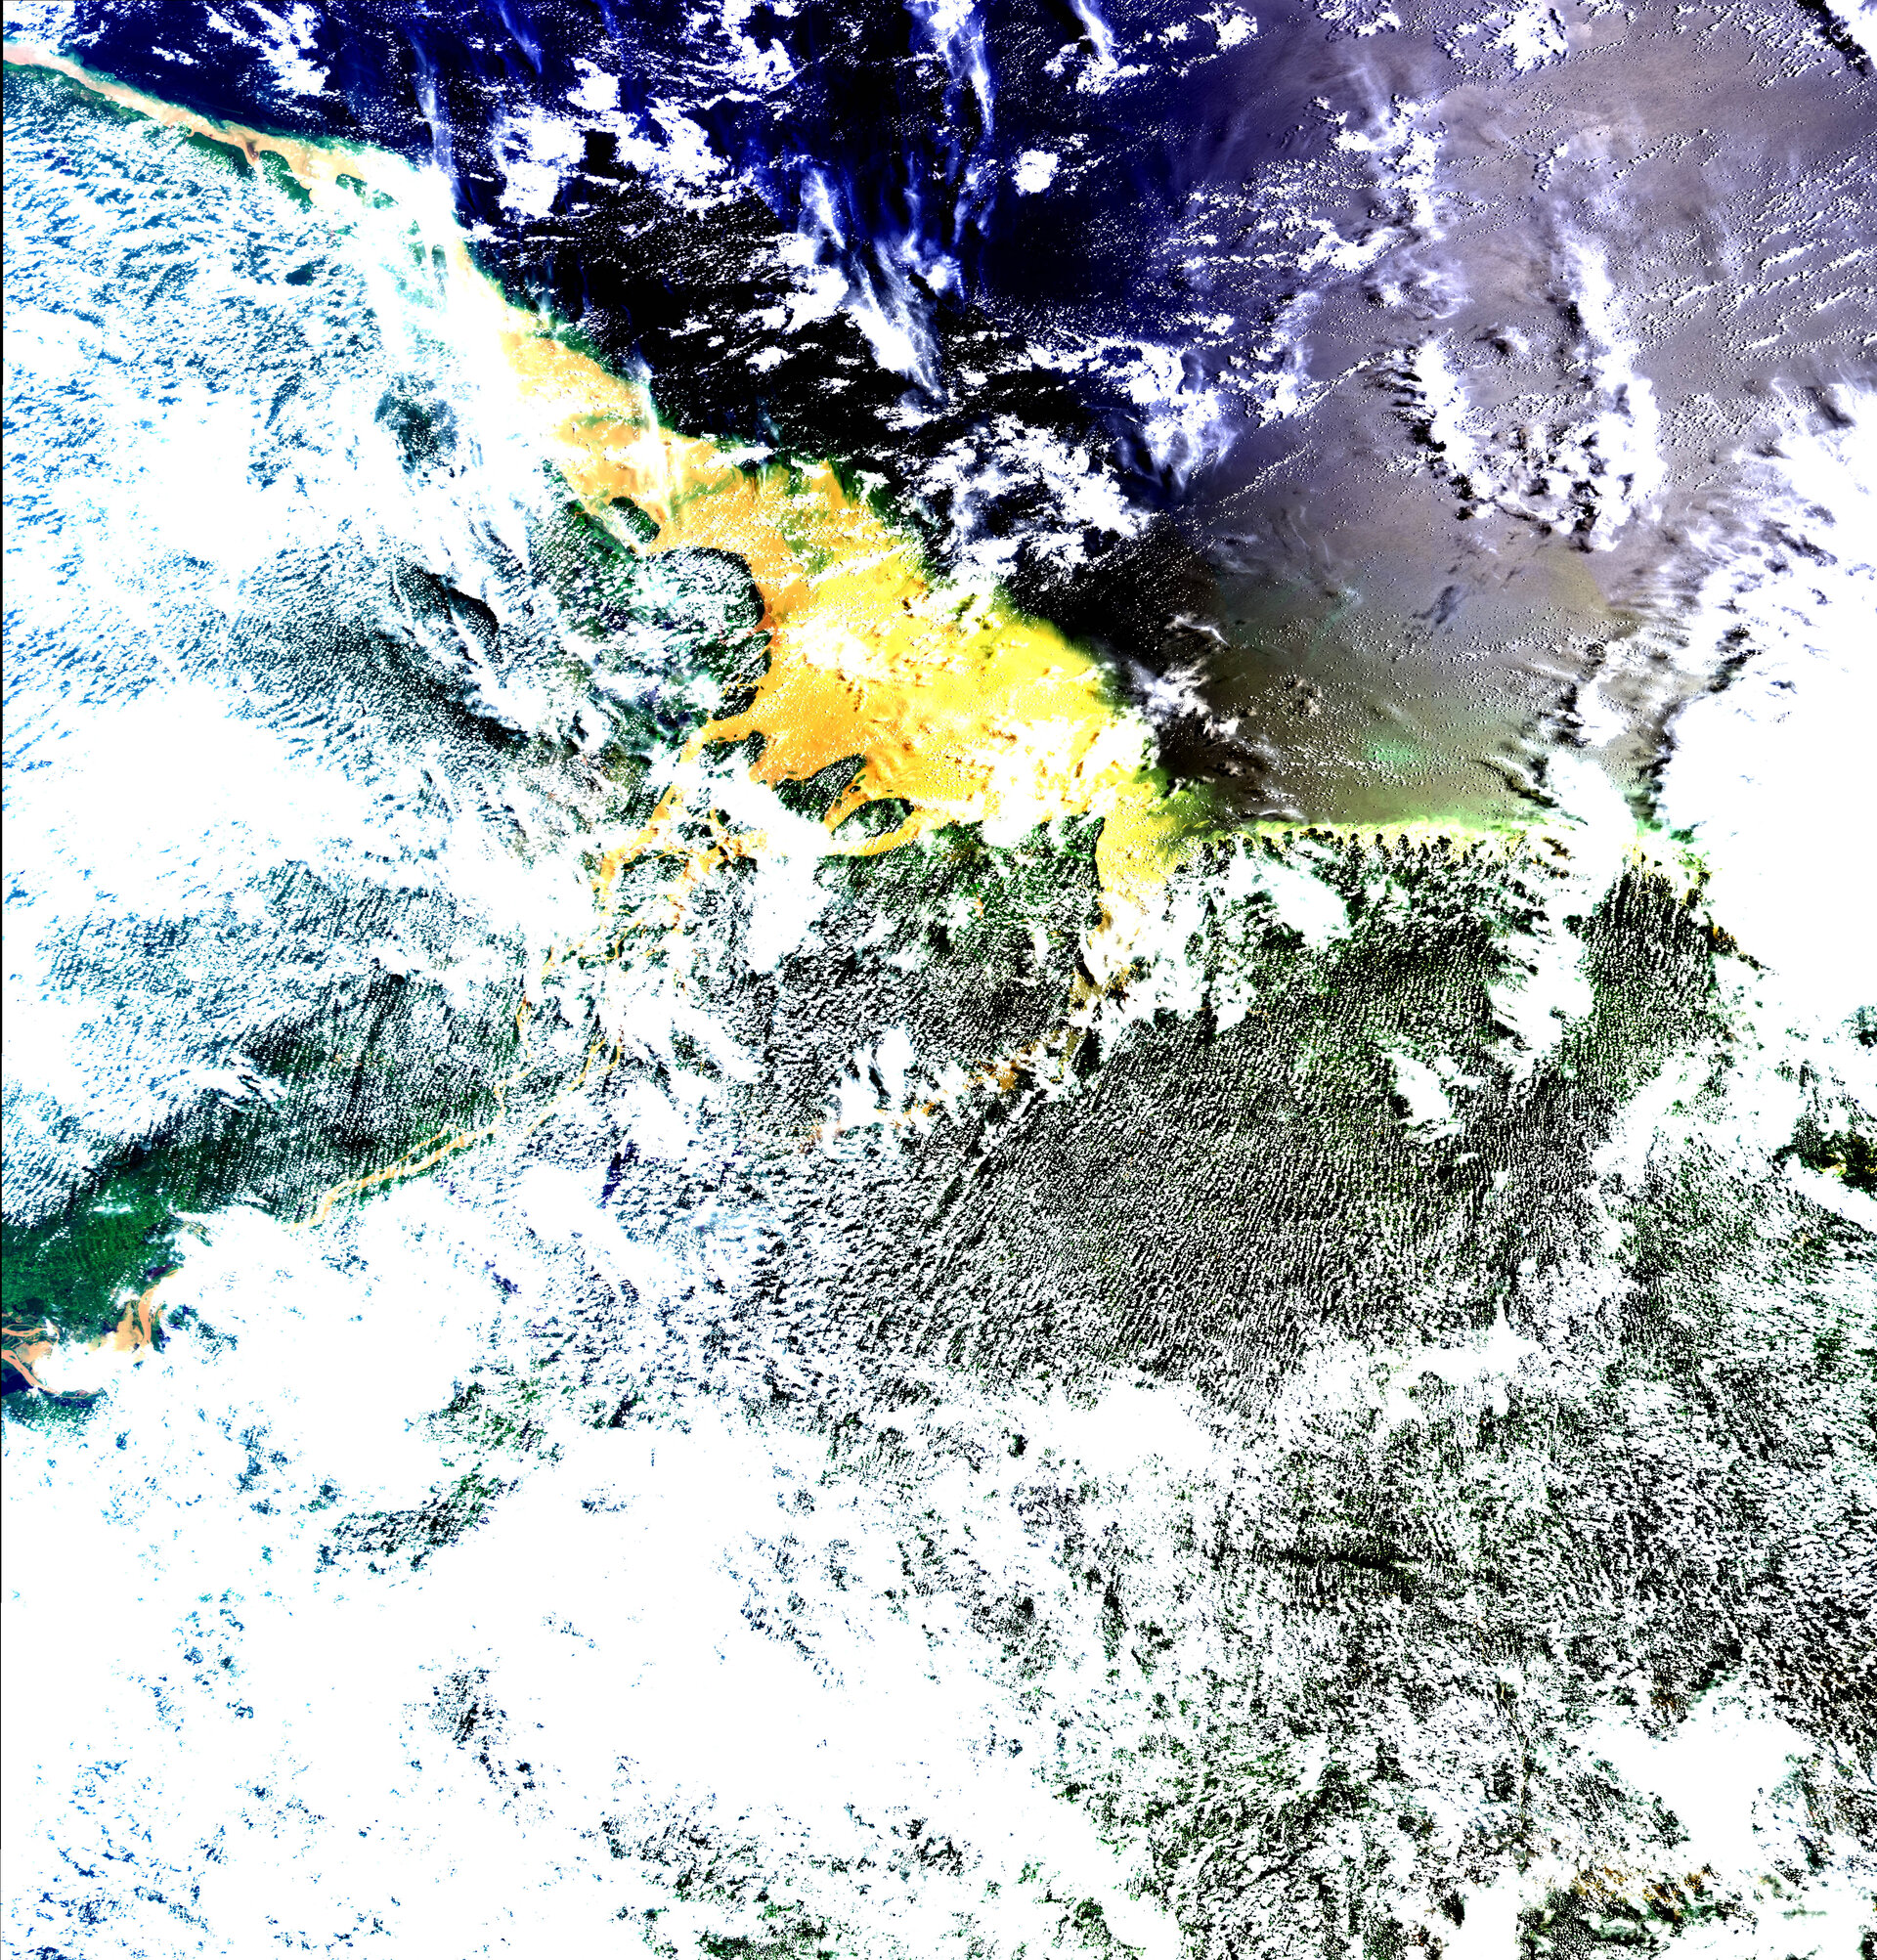 Meris image of the mouth of the Amazon,  25 March 2002